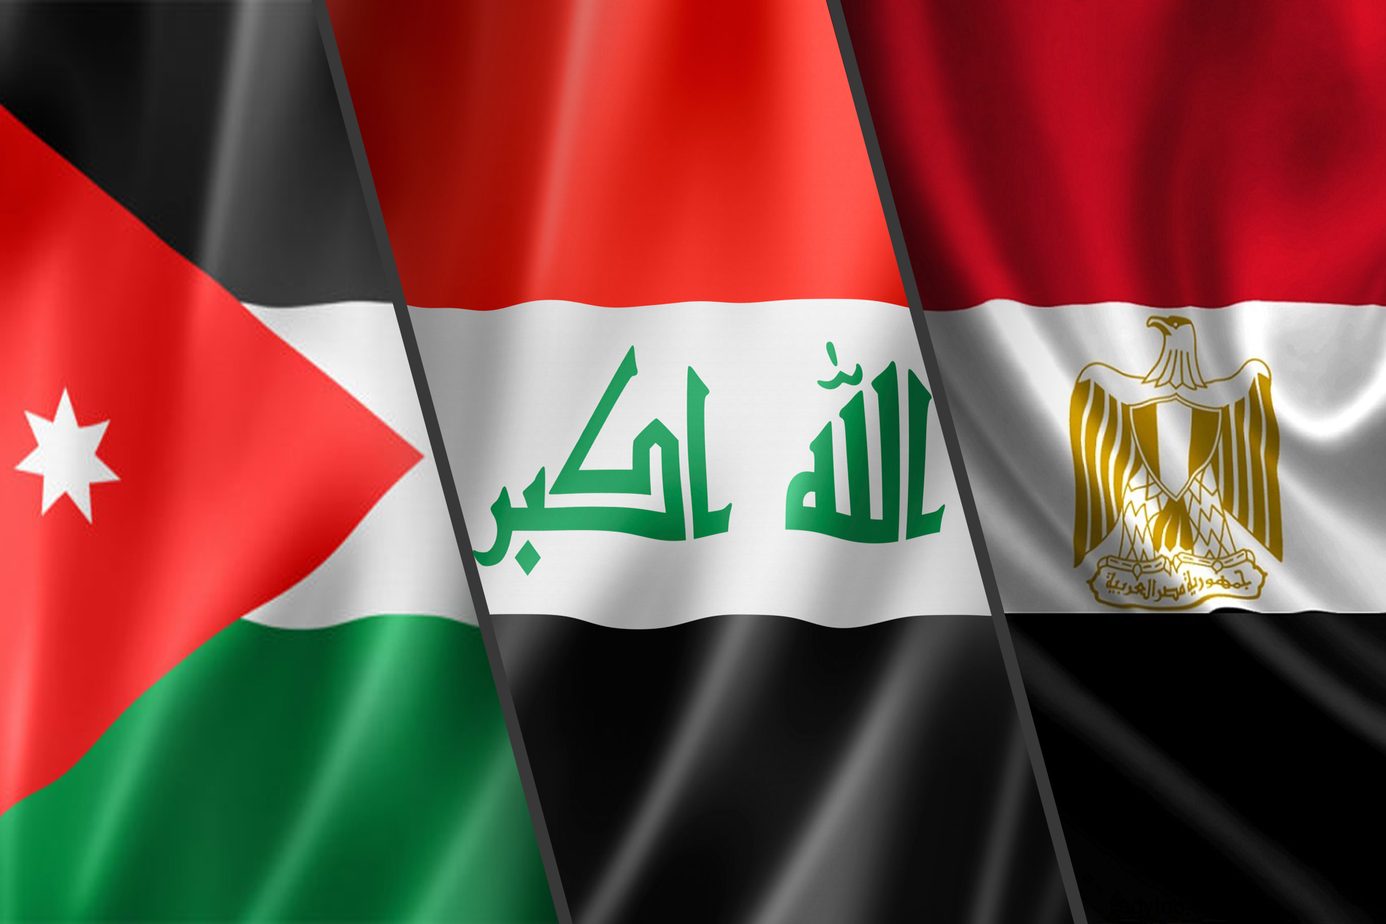 Next Sunday .. Baghdad hosts the trilateral summit between Iraq, Egypt and Jordan Flags